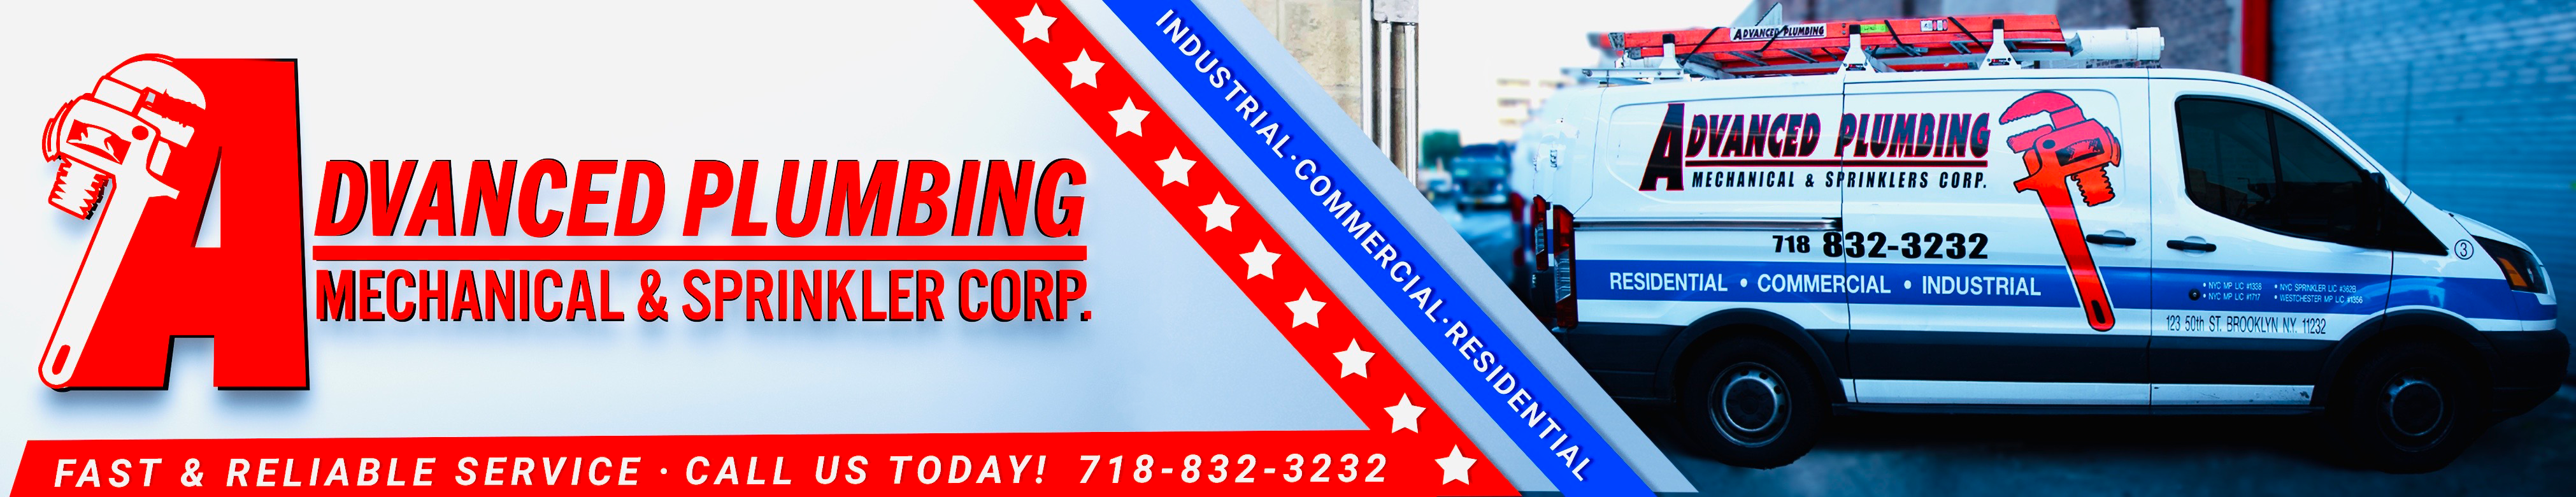 Advanced Plumbing Services of New York City, N.Y Plumbing